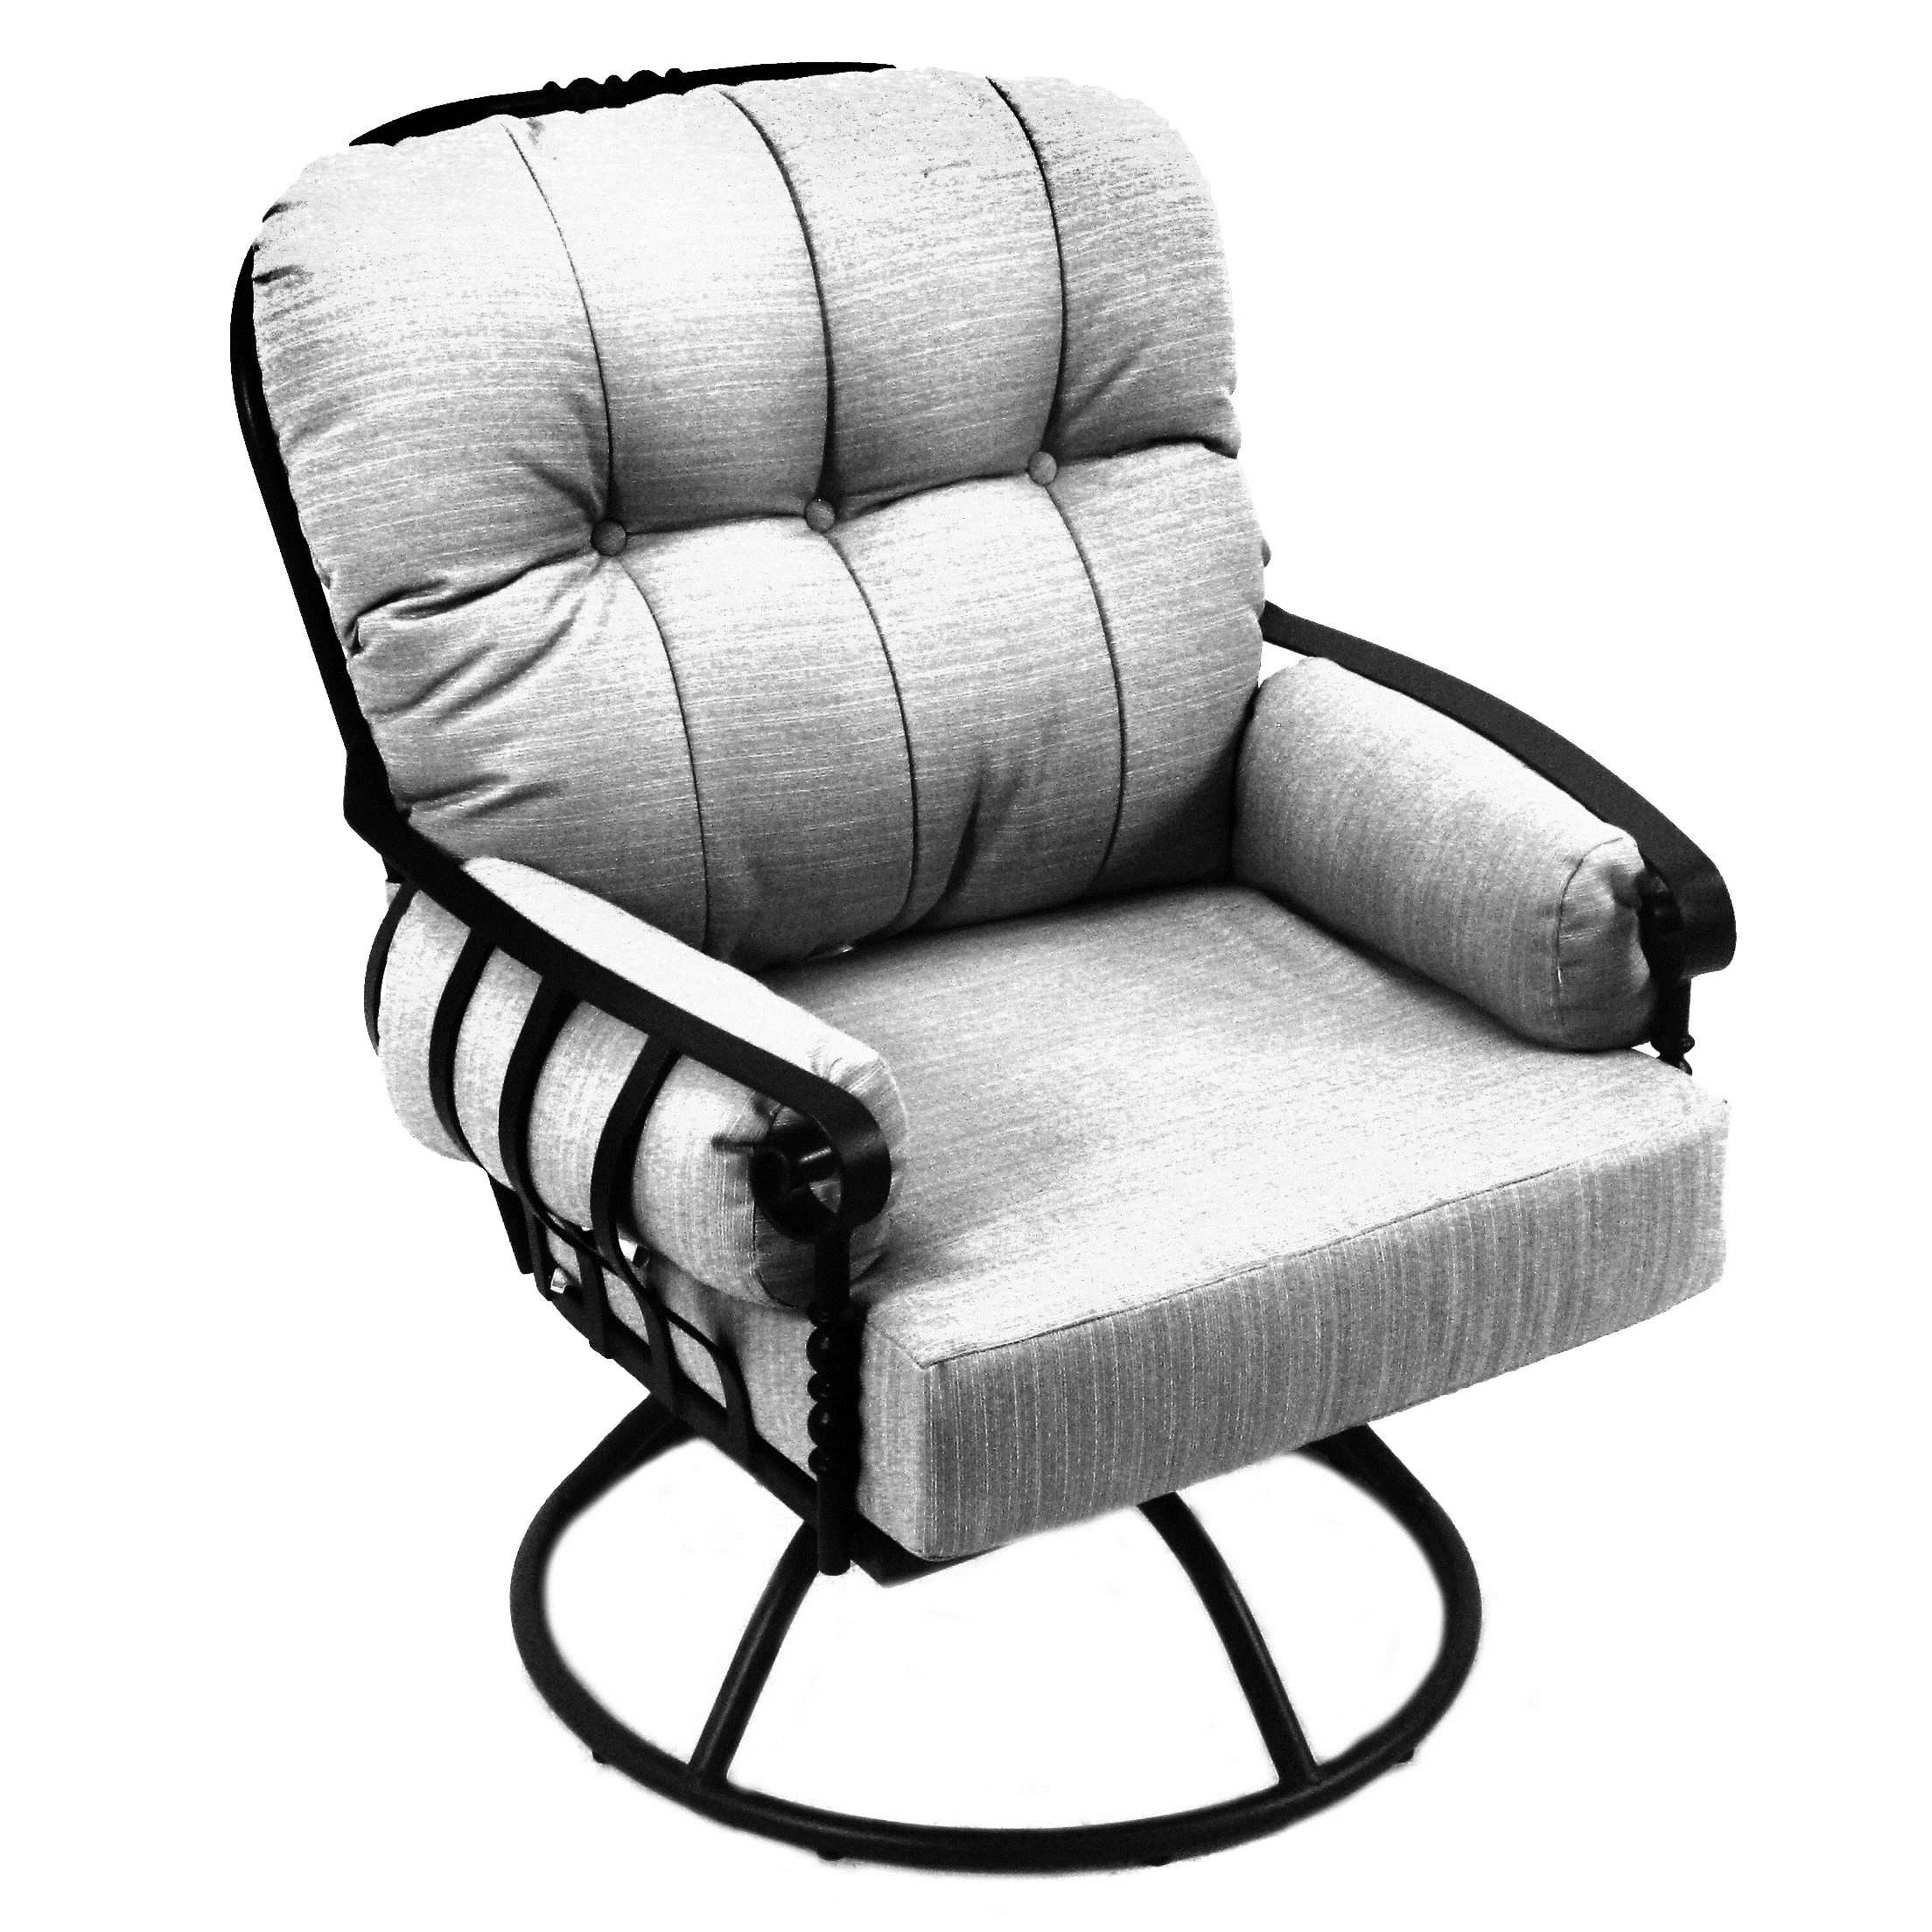 Swivel Rocking Chairs Meadowcraft Athens Swivel Rocking Chair With Cushions